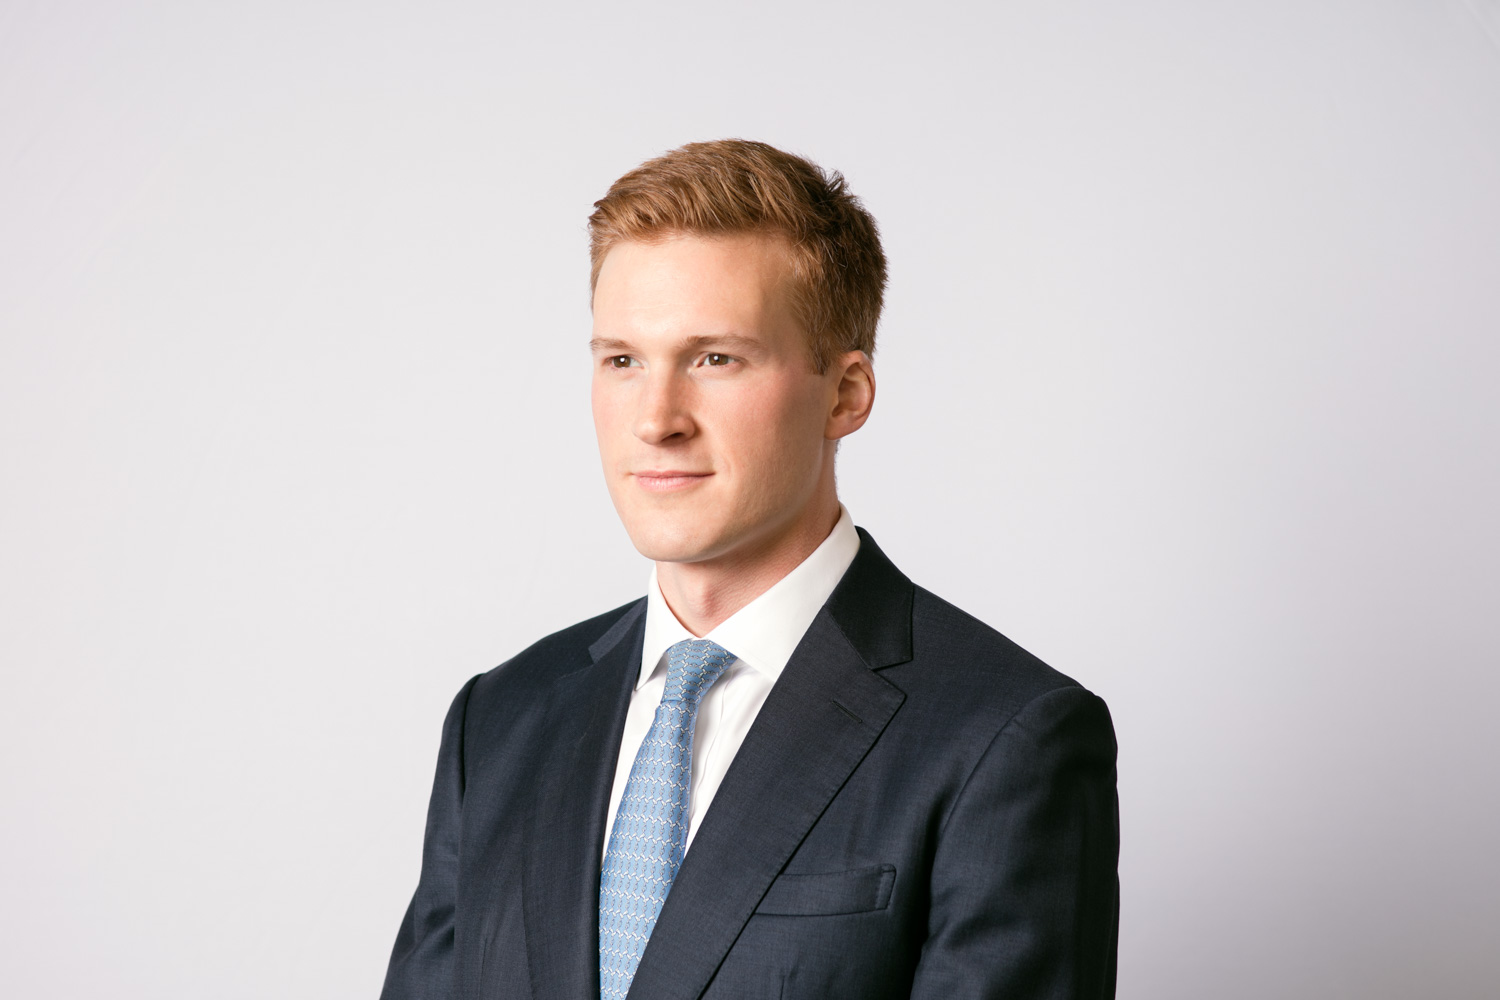 Professional Corporate Headshots for Private Equity Firm Bridgepoint in NYC